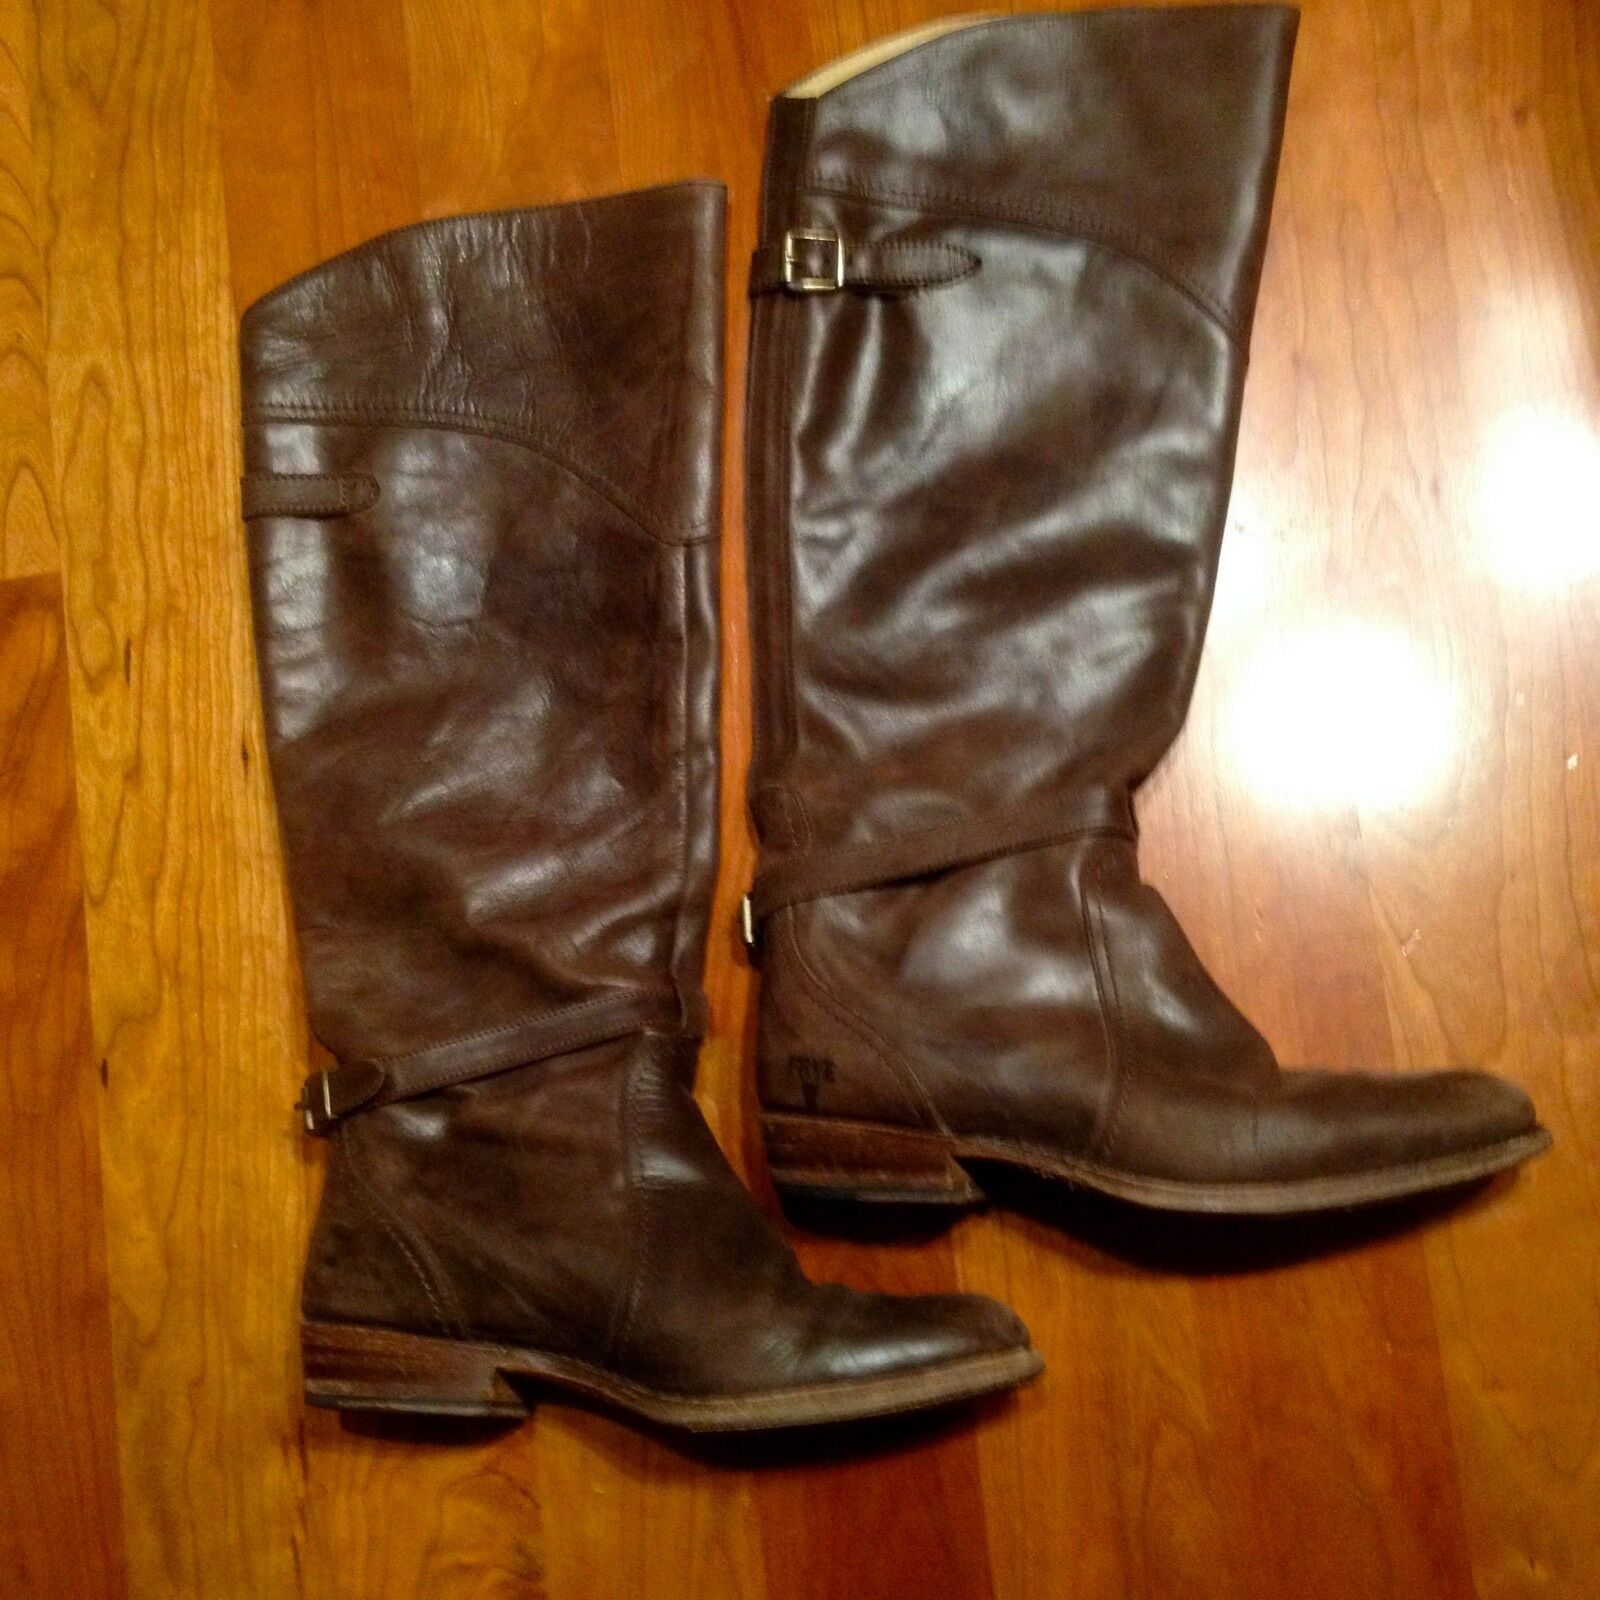 FRYE SHOES DORADO RIDING BOOTS DARK BROWN LEATHER KNEE HIGH 77561  458 8